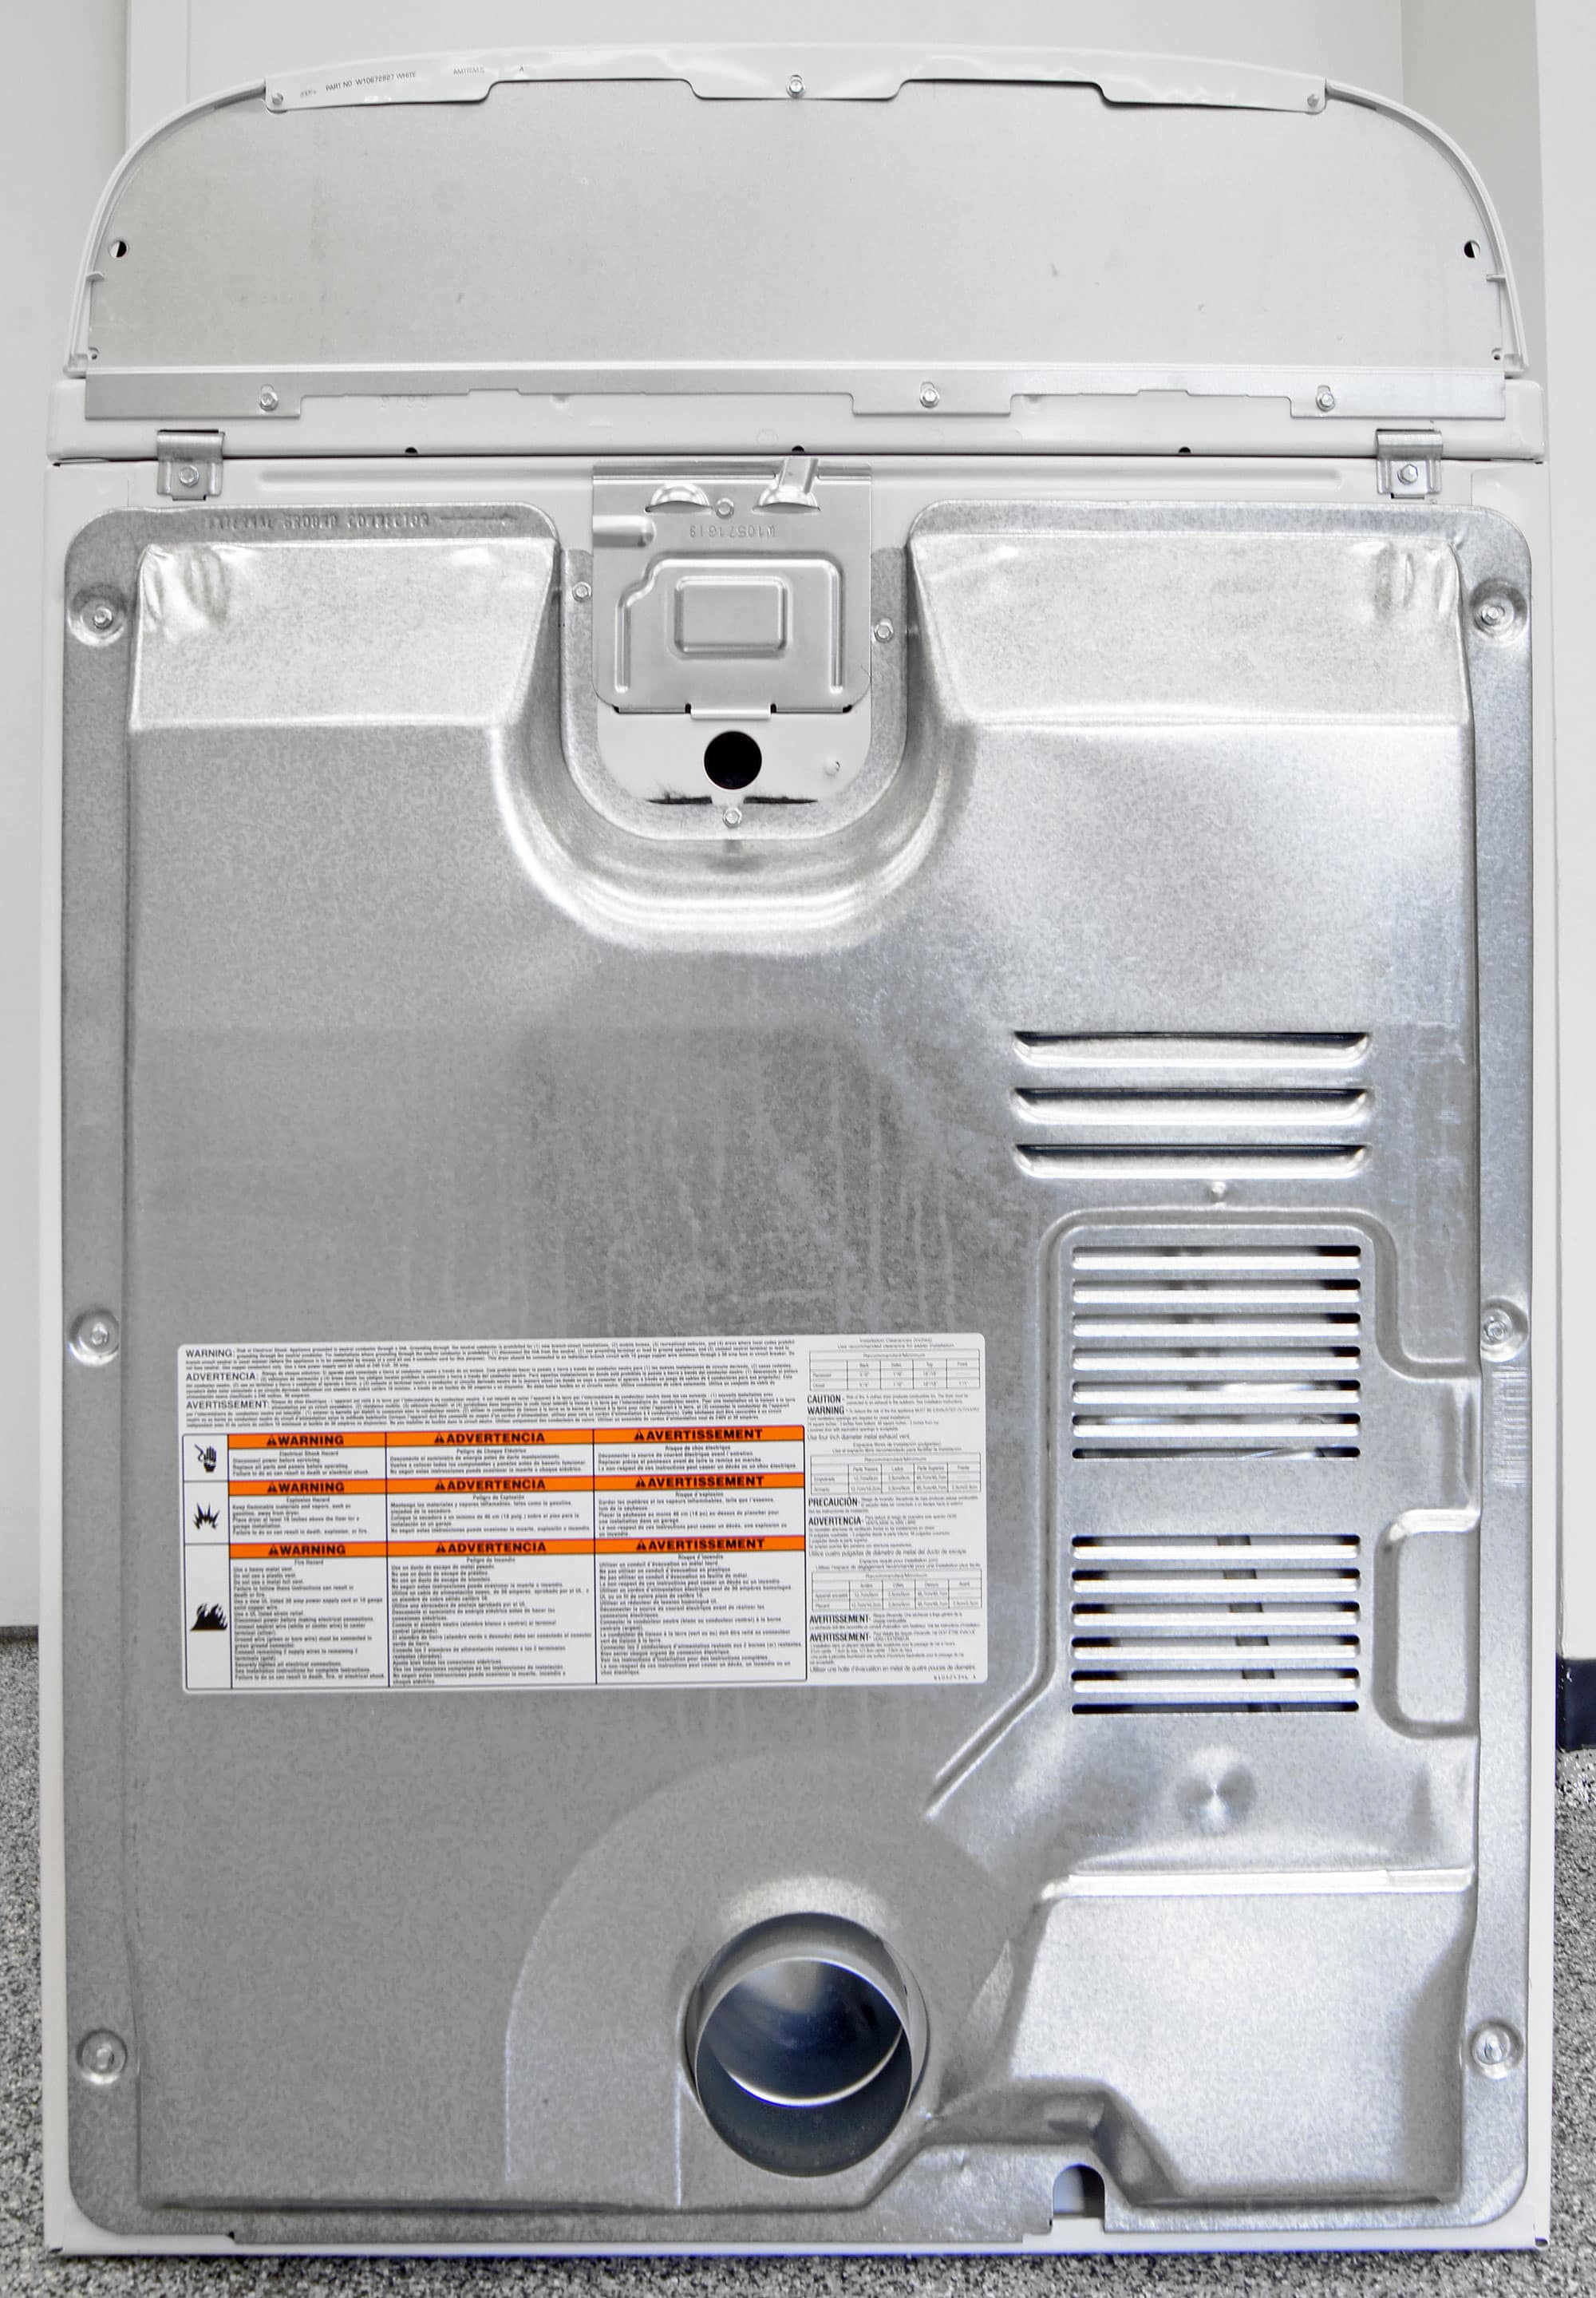 Whirlpool Wed4915ew Dryer Review Laundry Senseon Wiring Diagram No Steam Means Water Hookup Once The Plugged In You